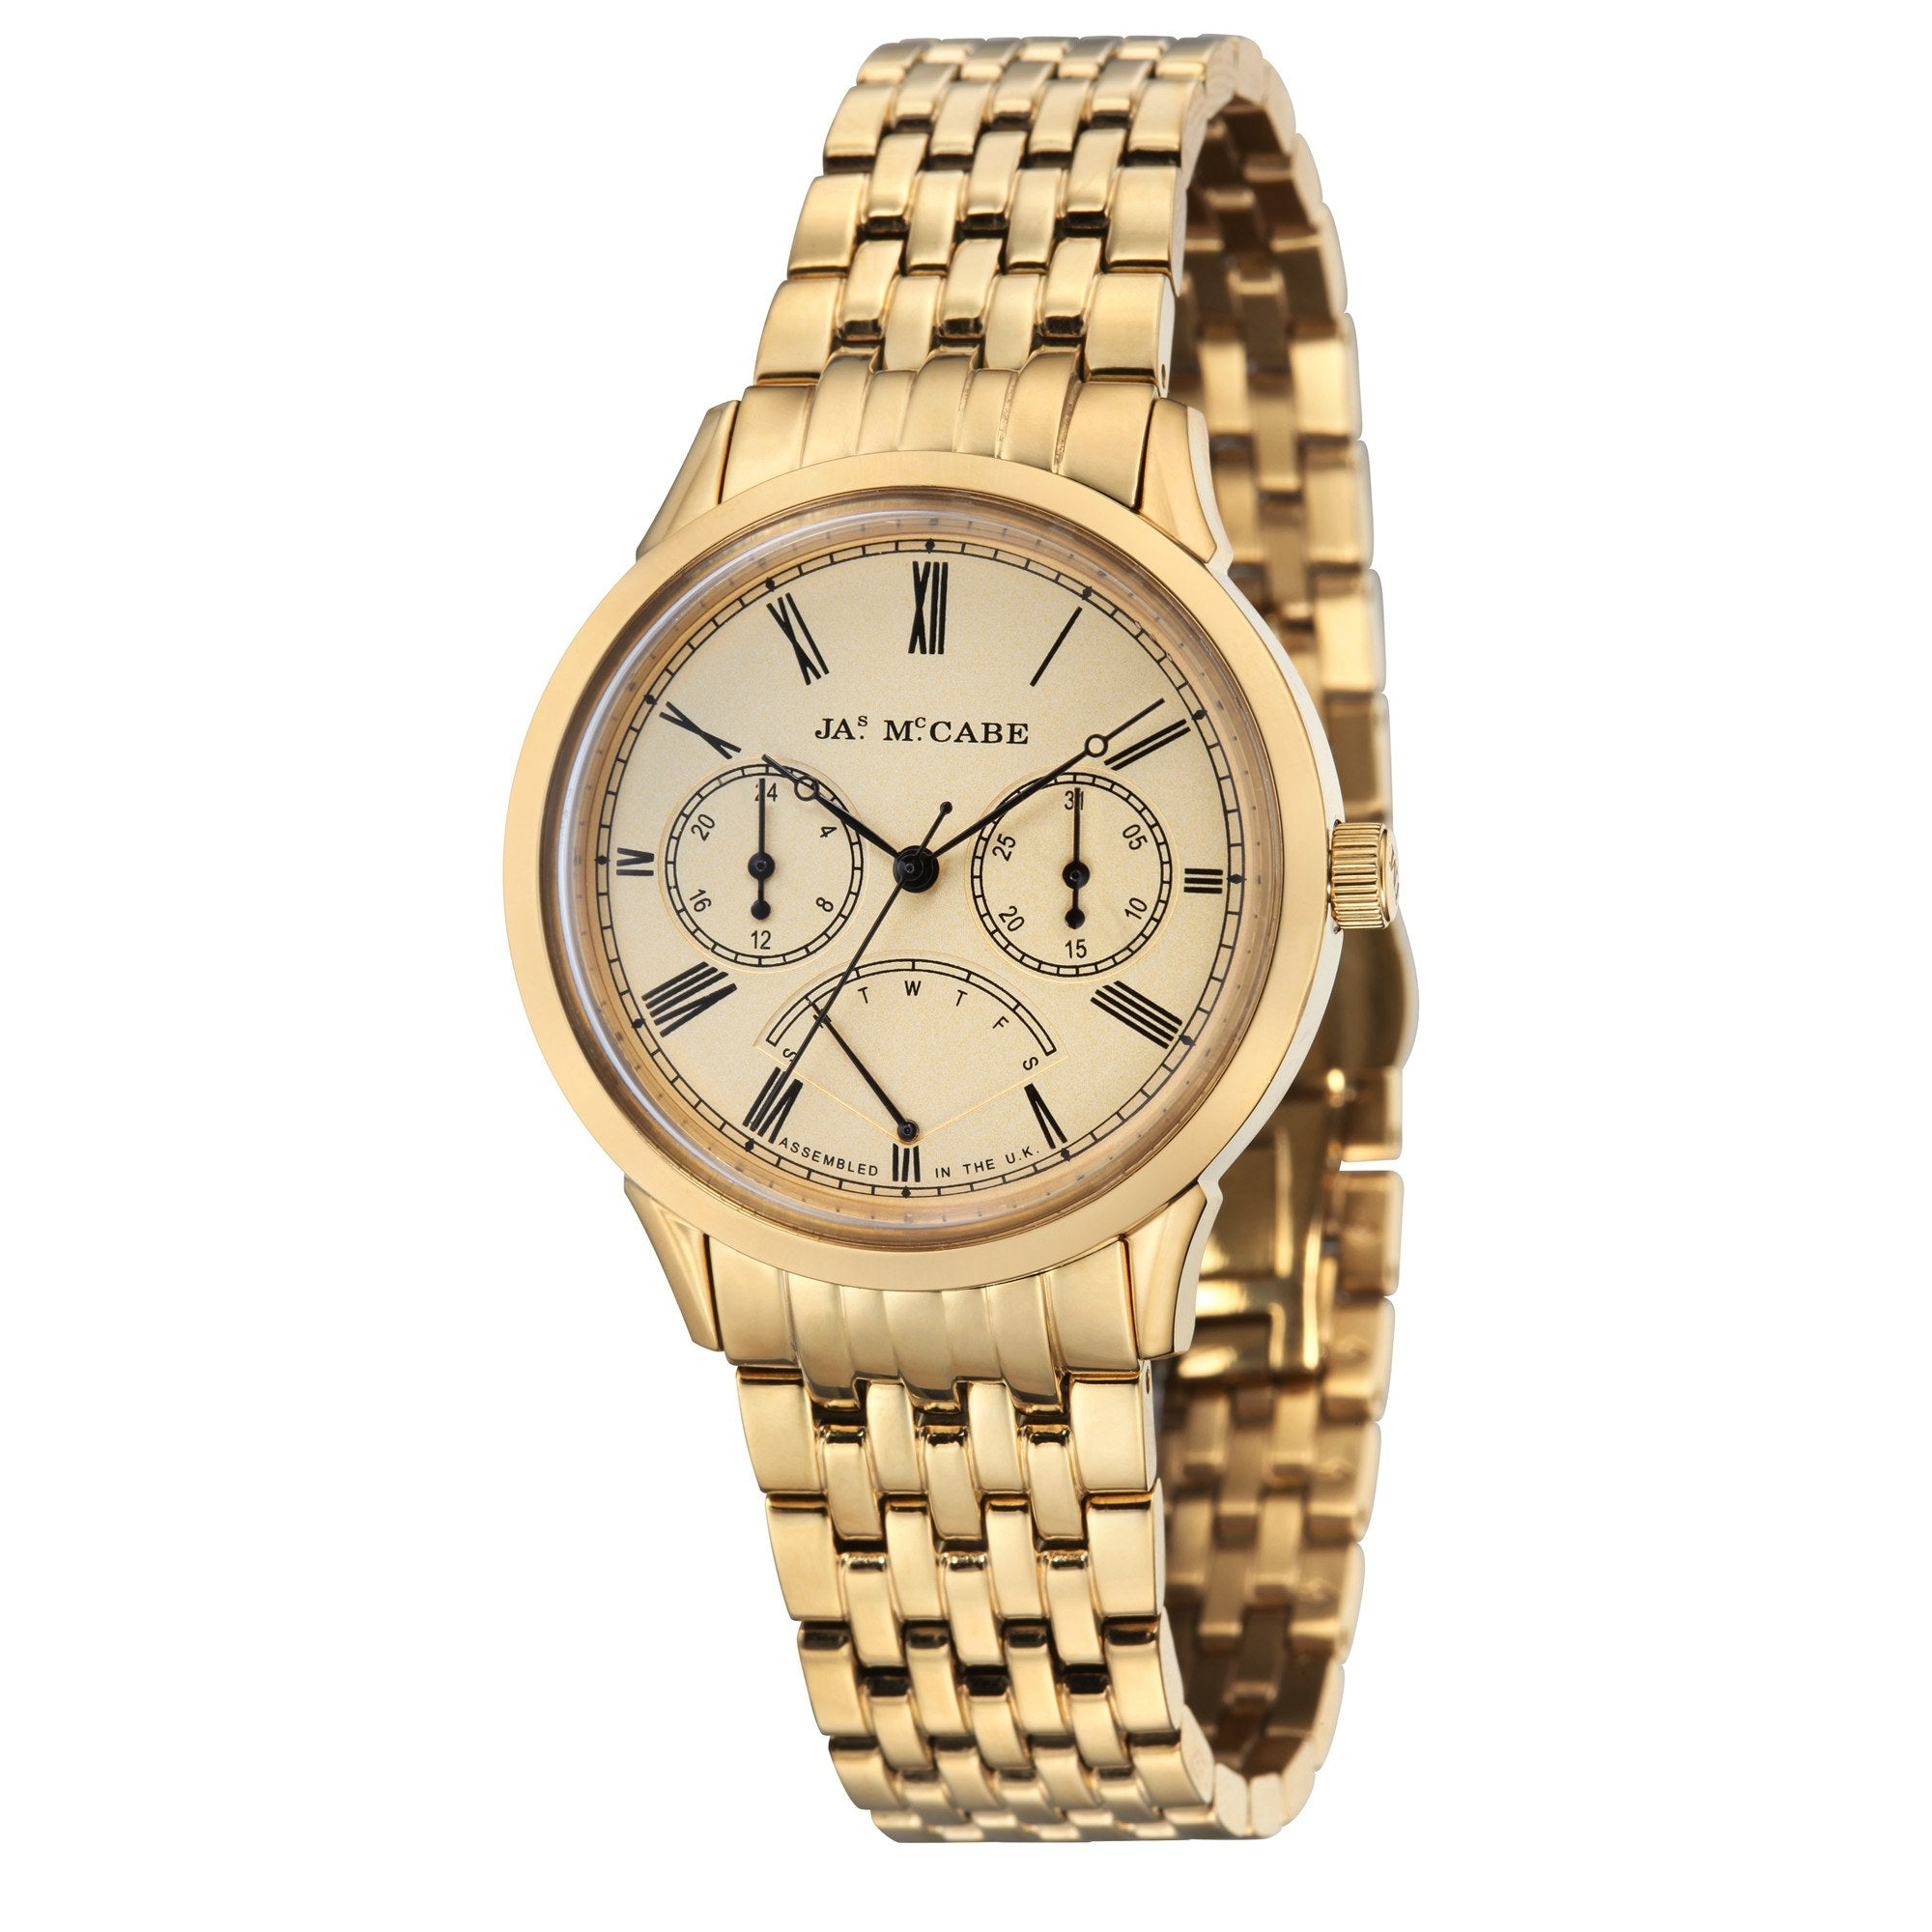 James Mccabe Men's JM-1019-22 Heritage Gold Quartz Watch with Solid Gold Band